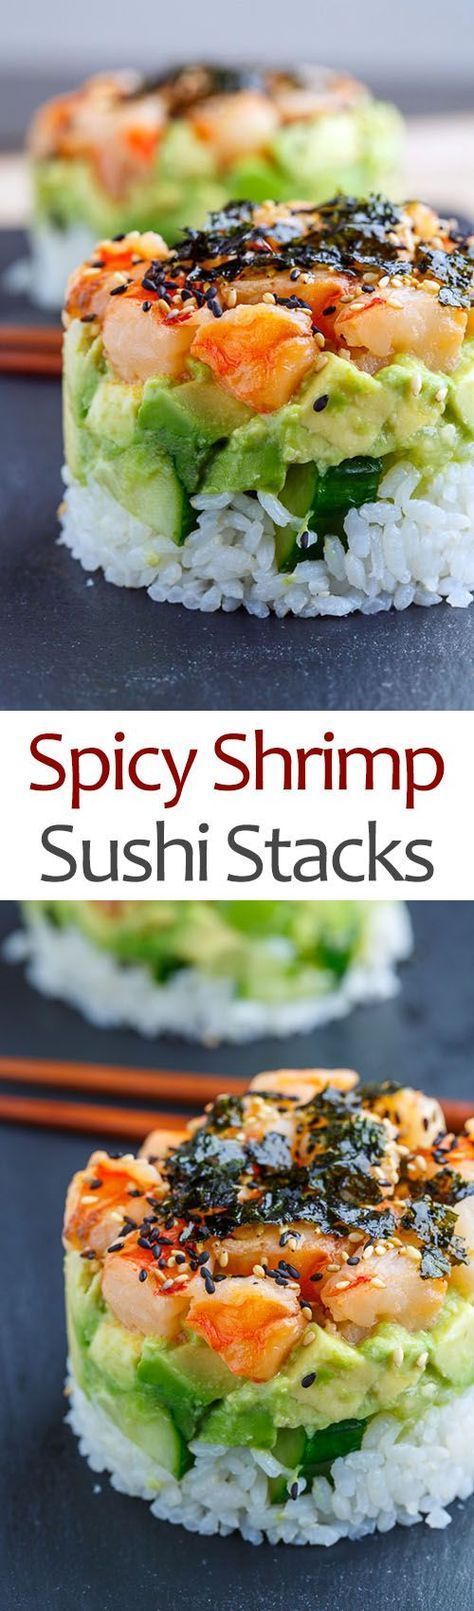 Spicy Shrimp Sushi Stacks, I would use cauliflower instead of rice